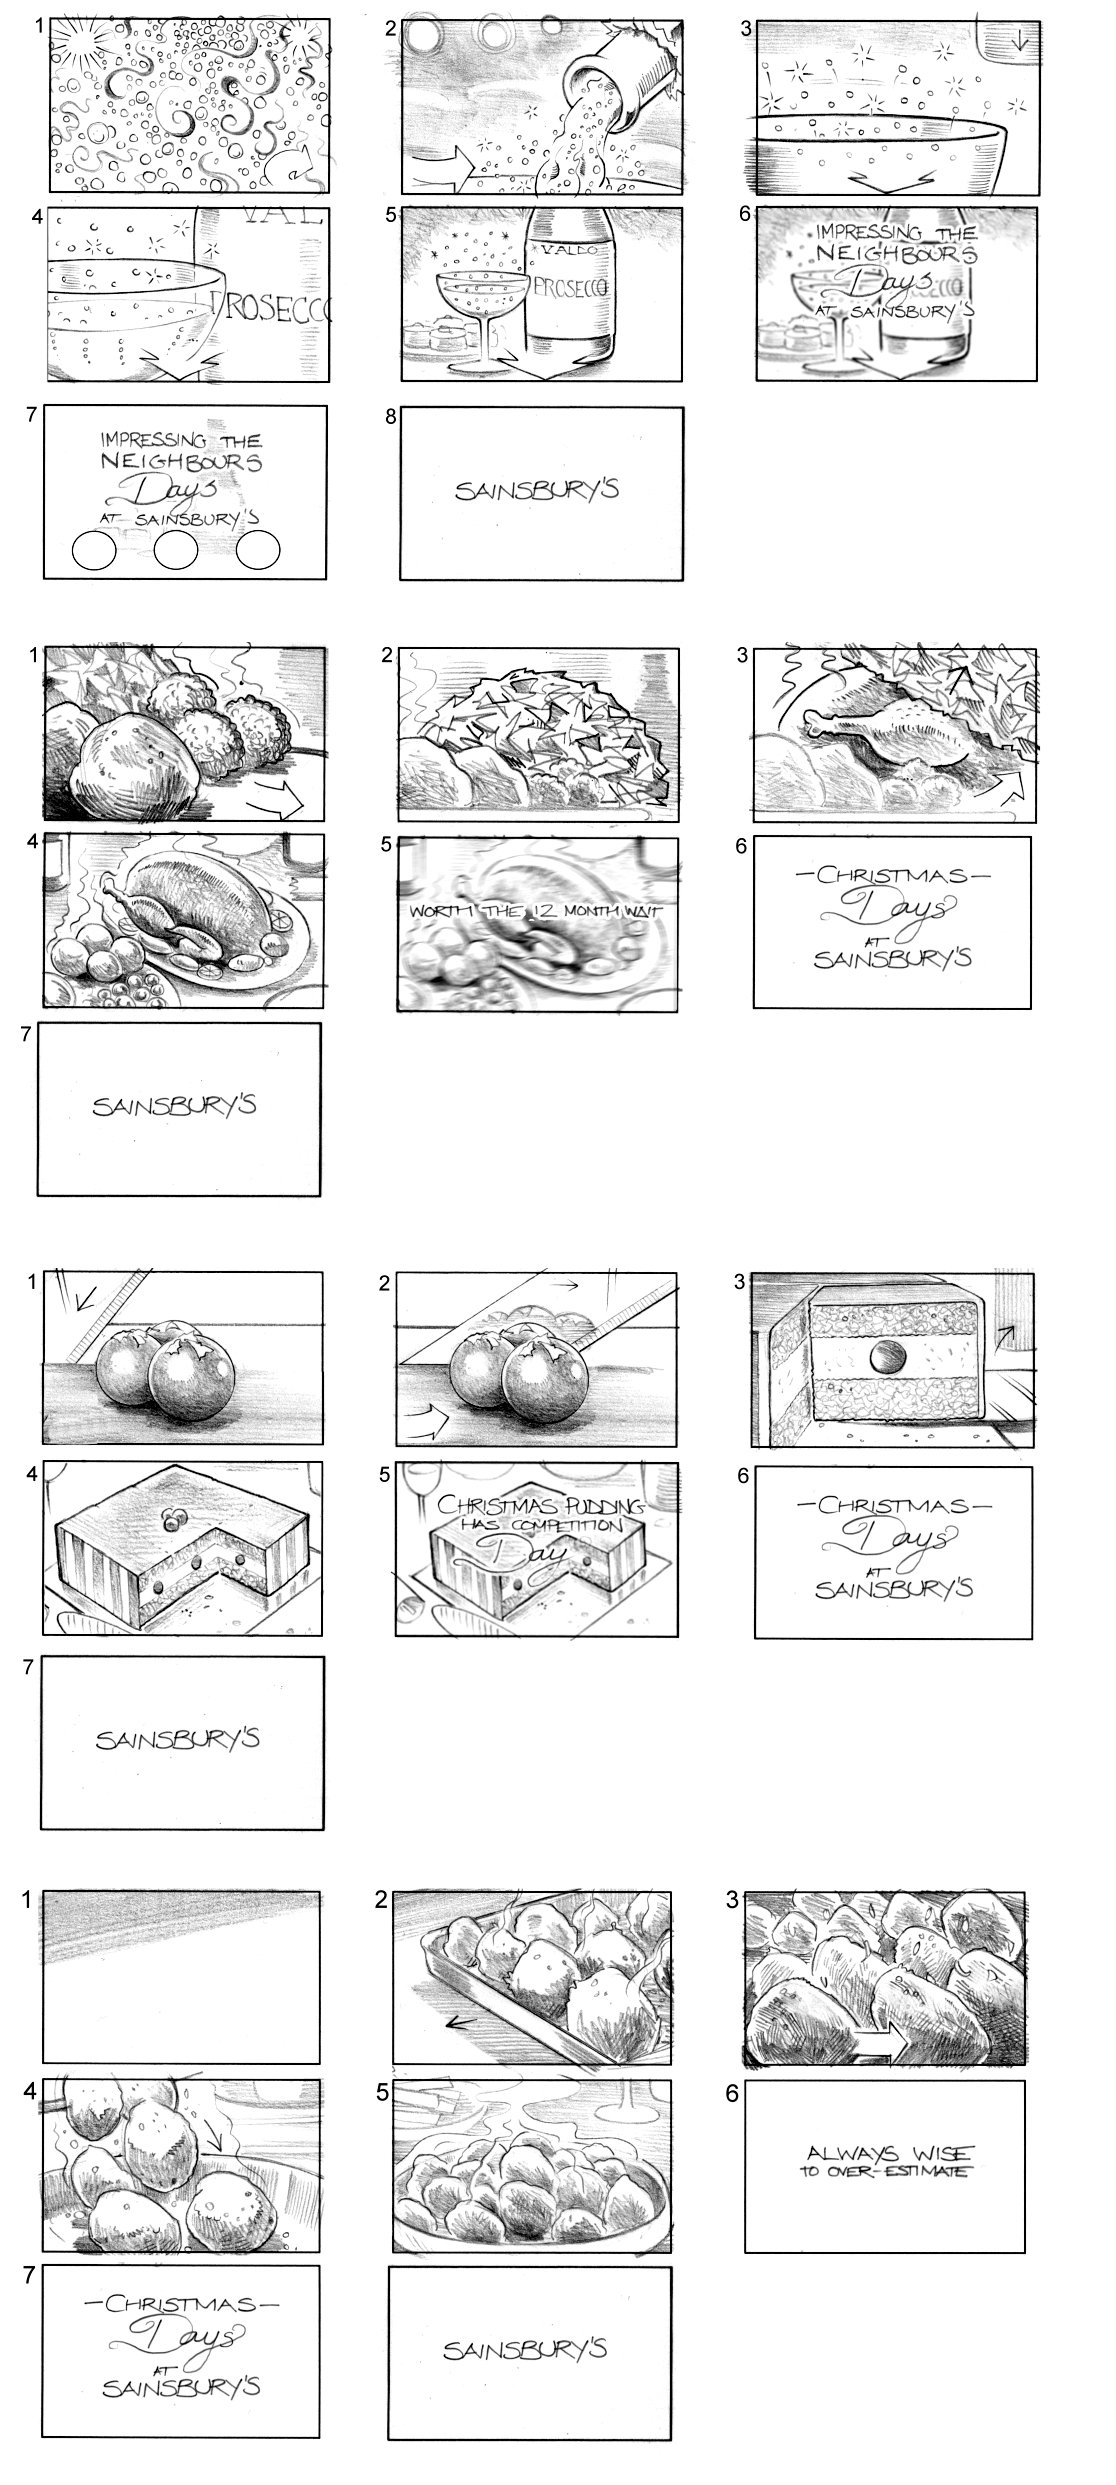 SAINSBURY'S STORYBOARD BY ANDY SPARROW